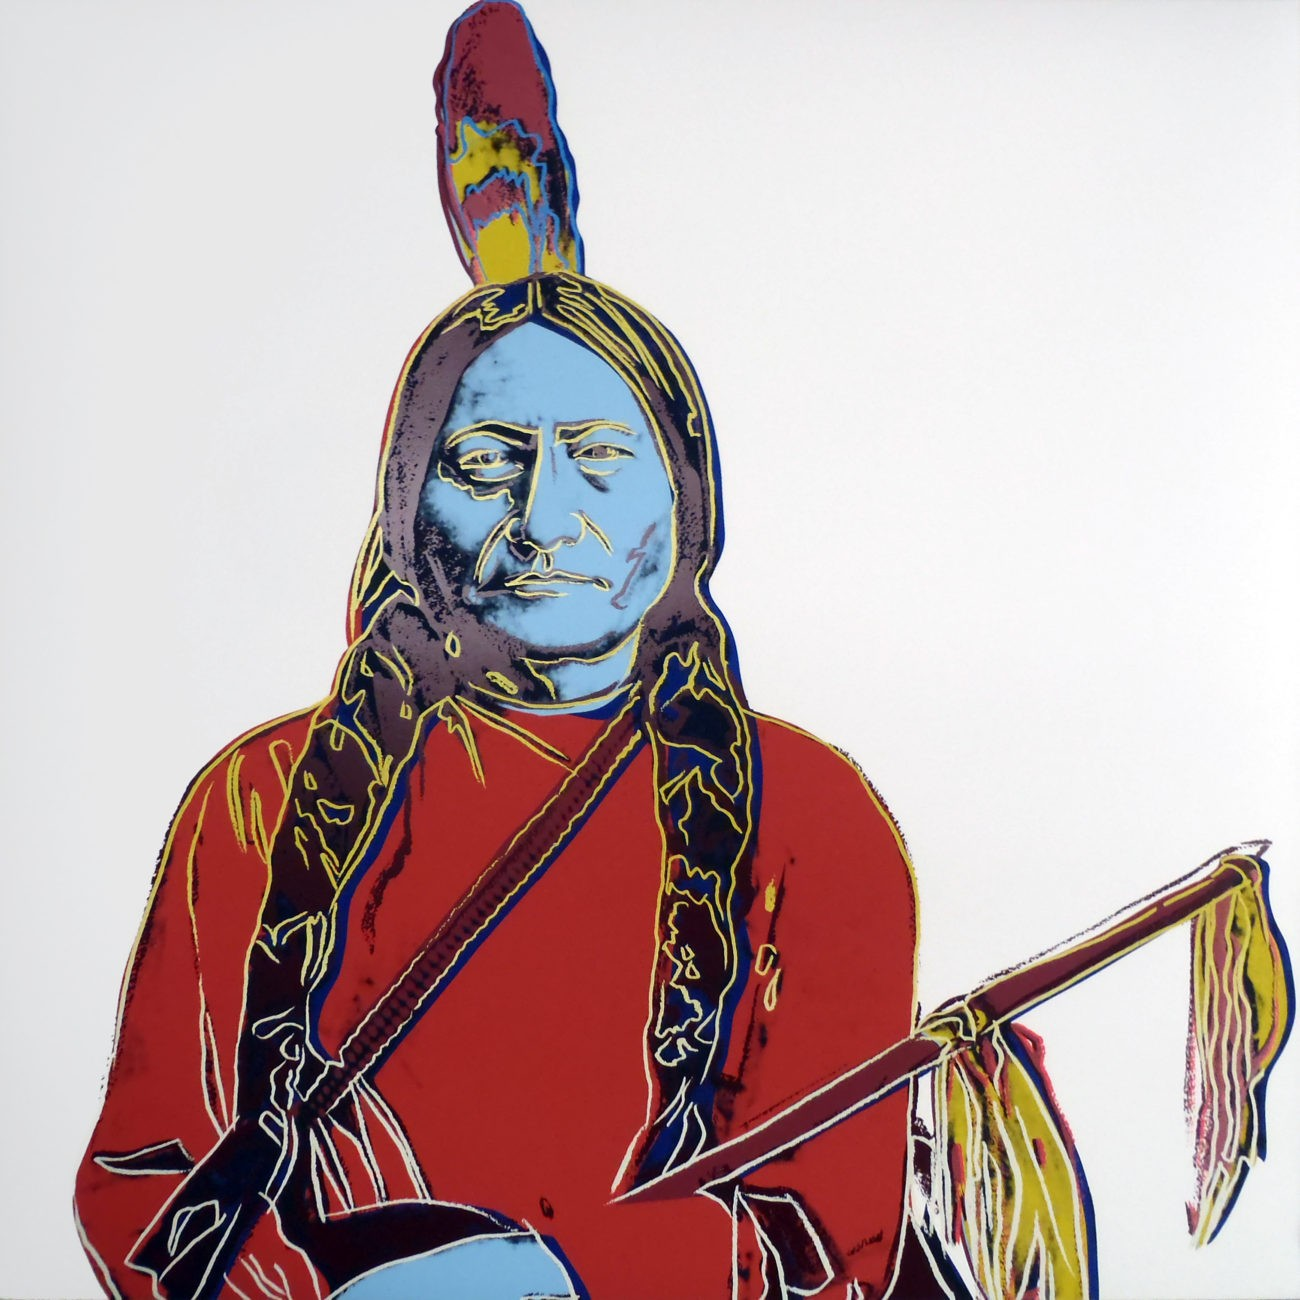 Andy Warhol   Cowboys and Indians   Sitting Bull   IIIA 70   1986   Image of Artists' work.